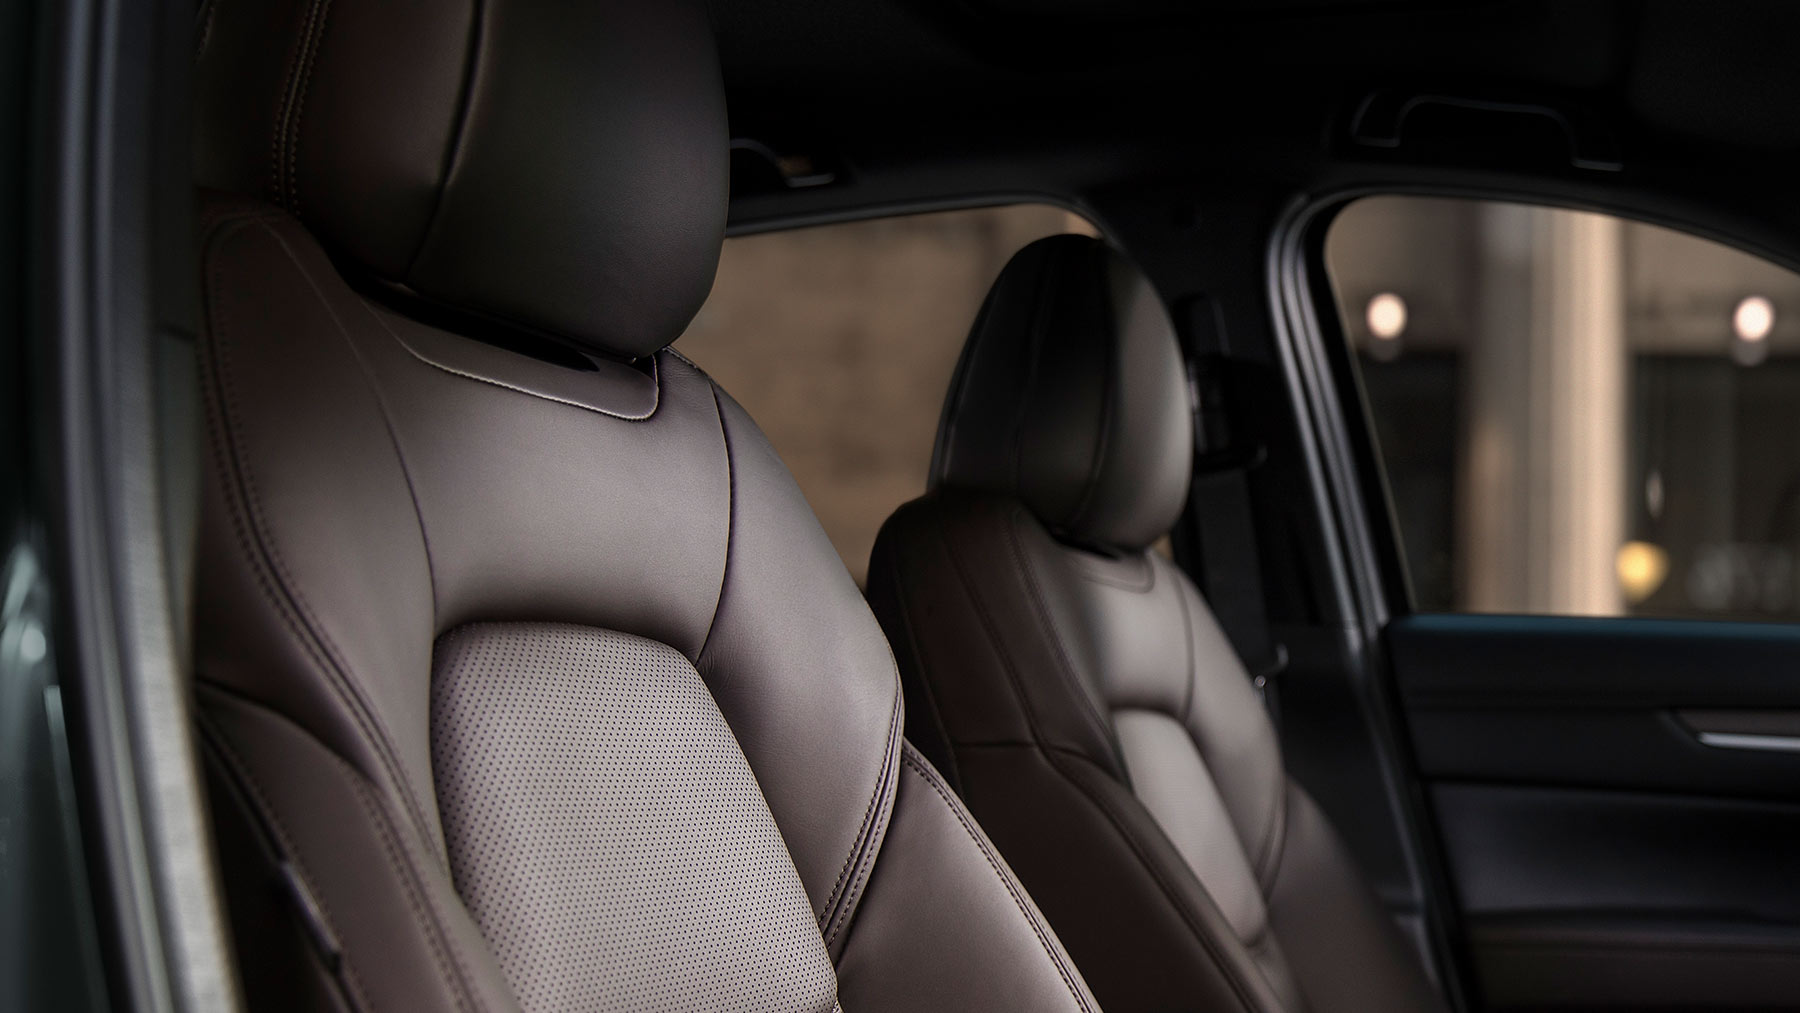 Luxurious Seating Options in the Mazda CX-5